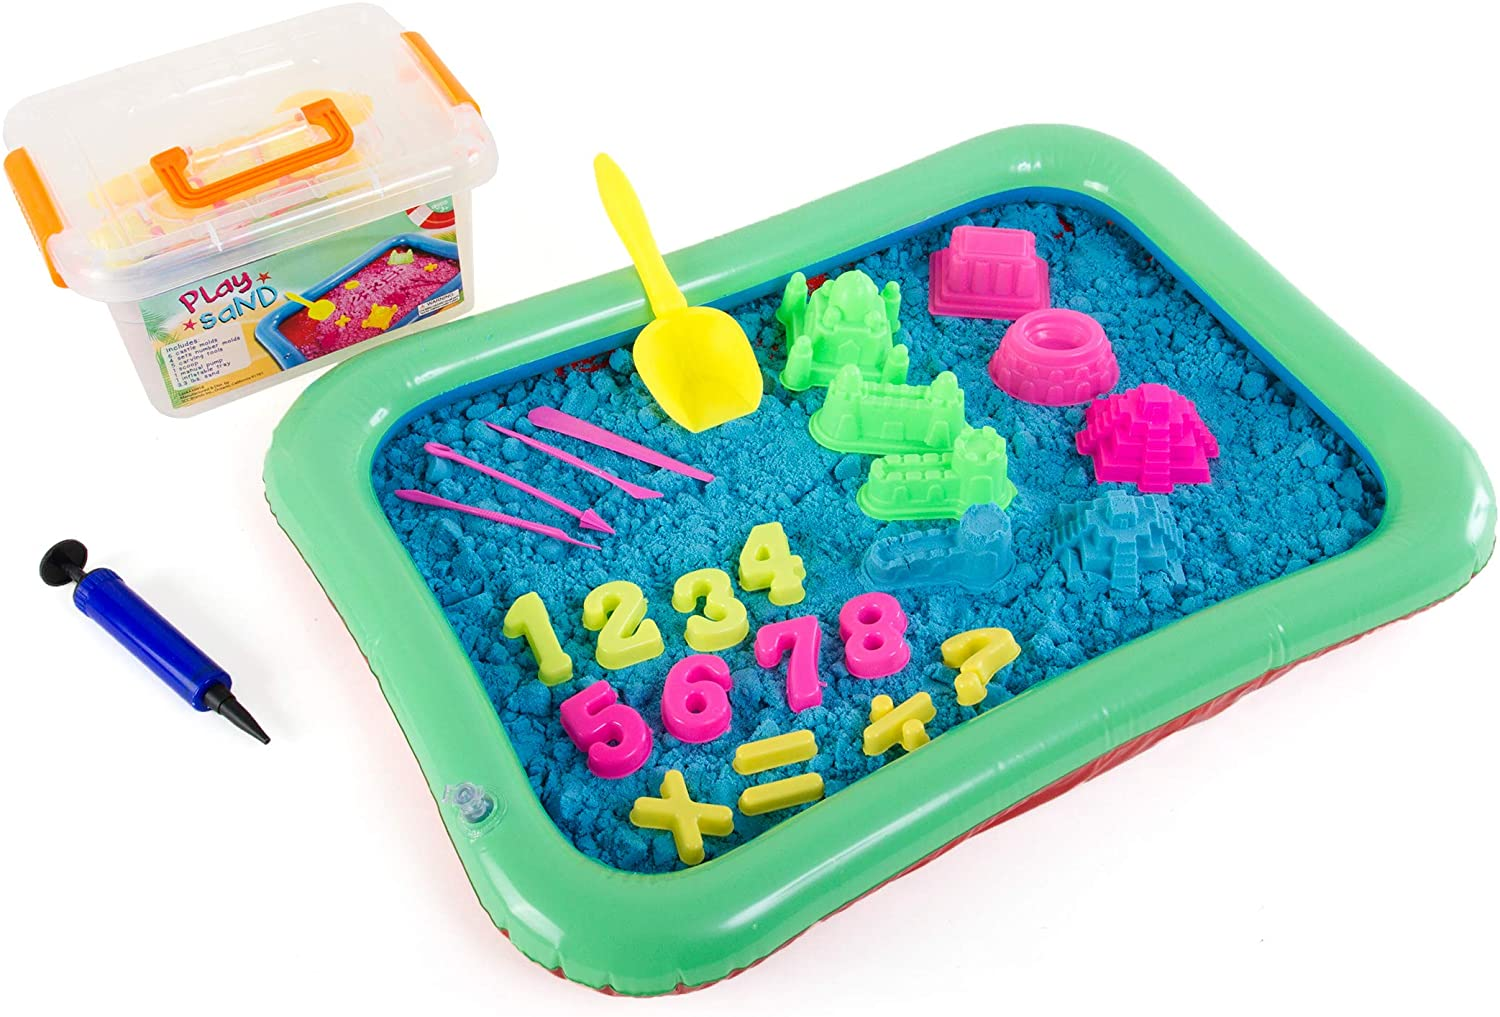 Play Sand Kit - 32 pc Play Sand Sensory Toy Set with 3.3lbs of Colored Magic Play Sand, Inflatable Sand Box, Castle Molds, Carving Tools, Shovel, Air Pump, Storage Bucket & More (Blue)